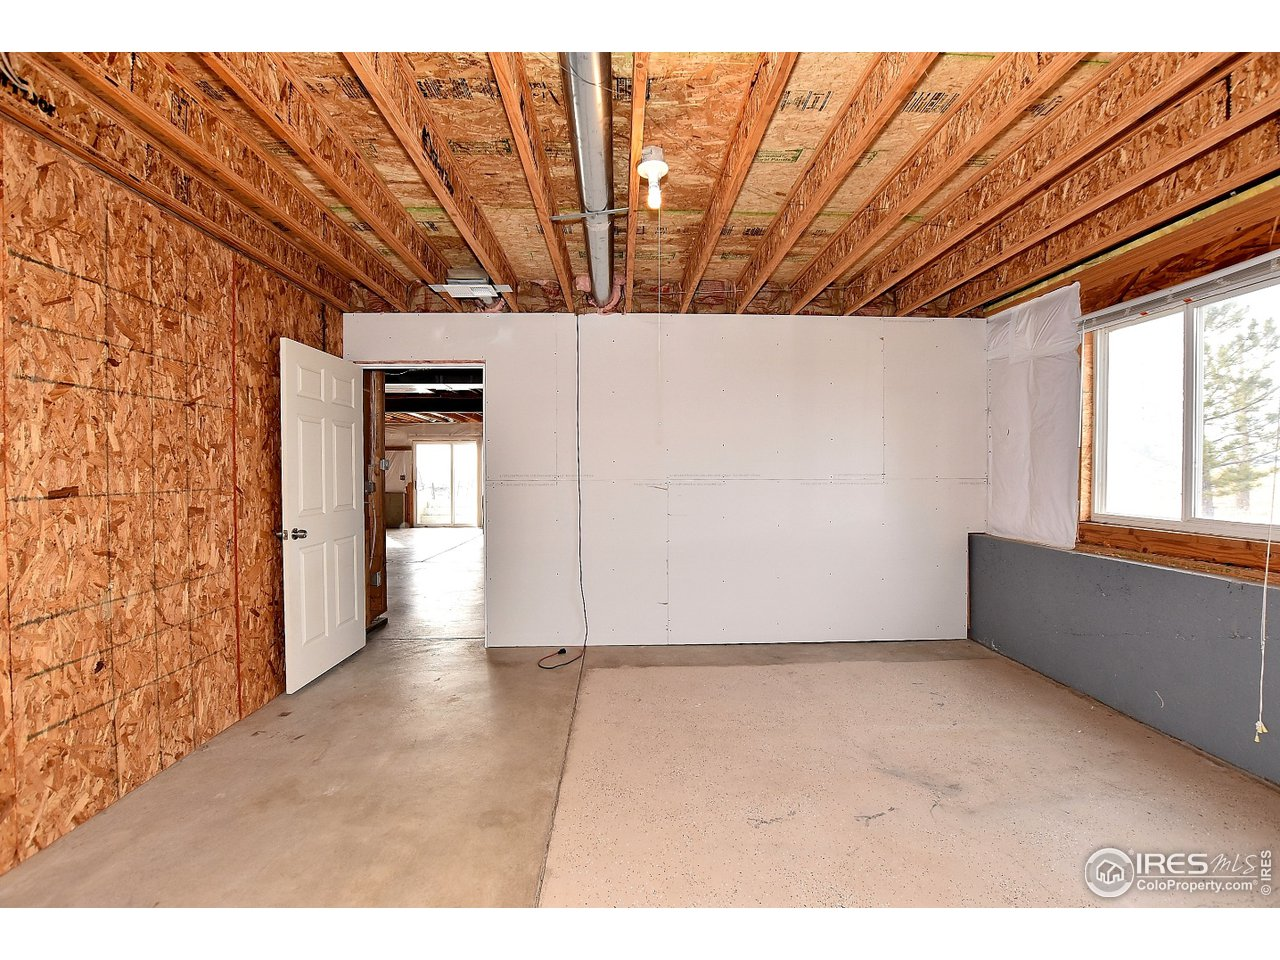 4th Bedroom Downstairs